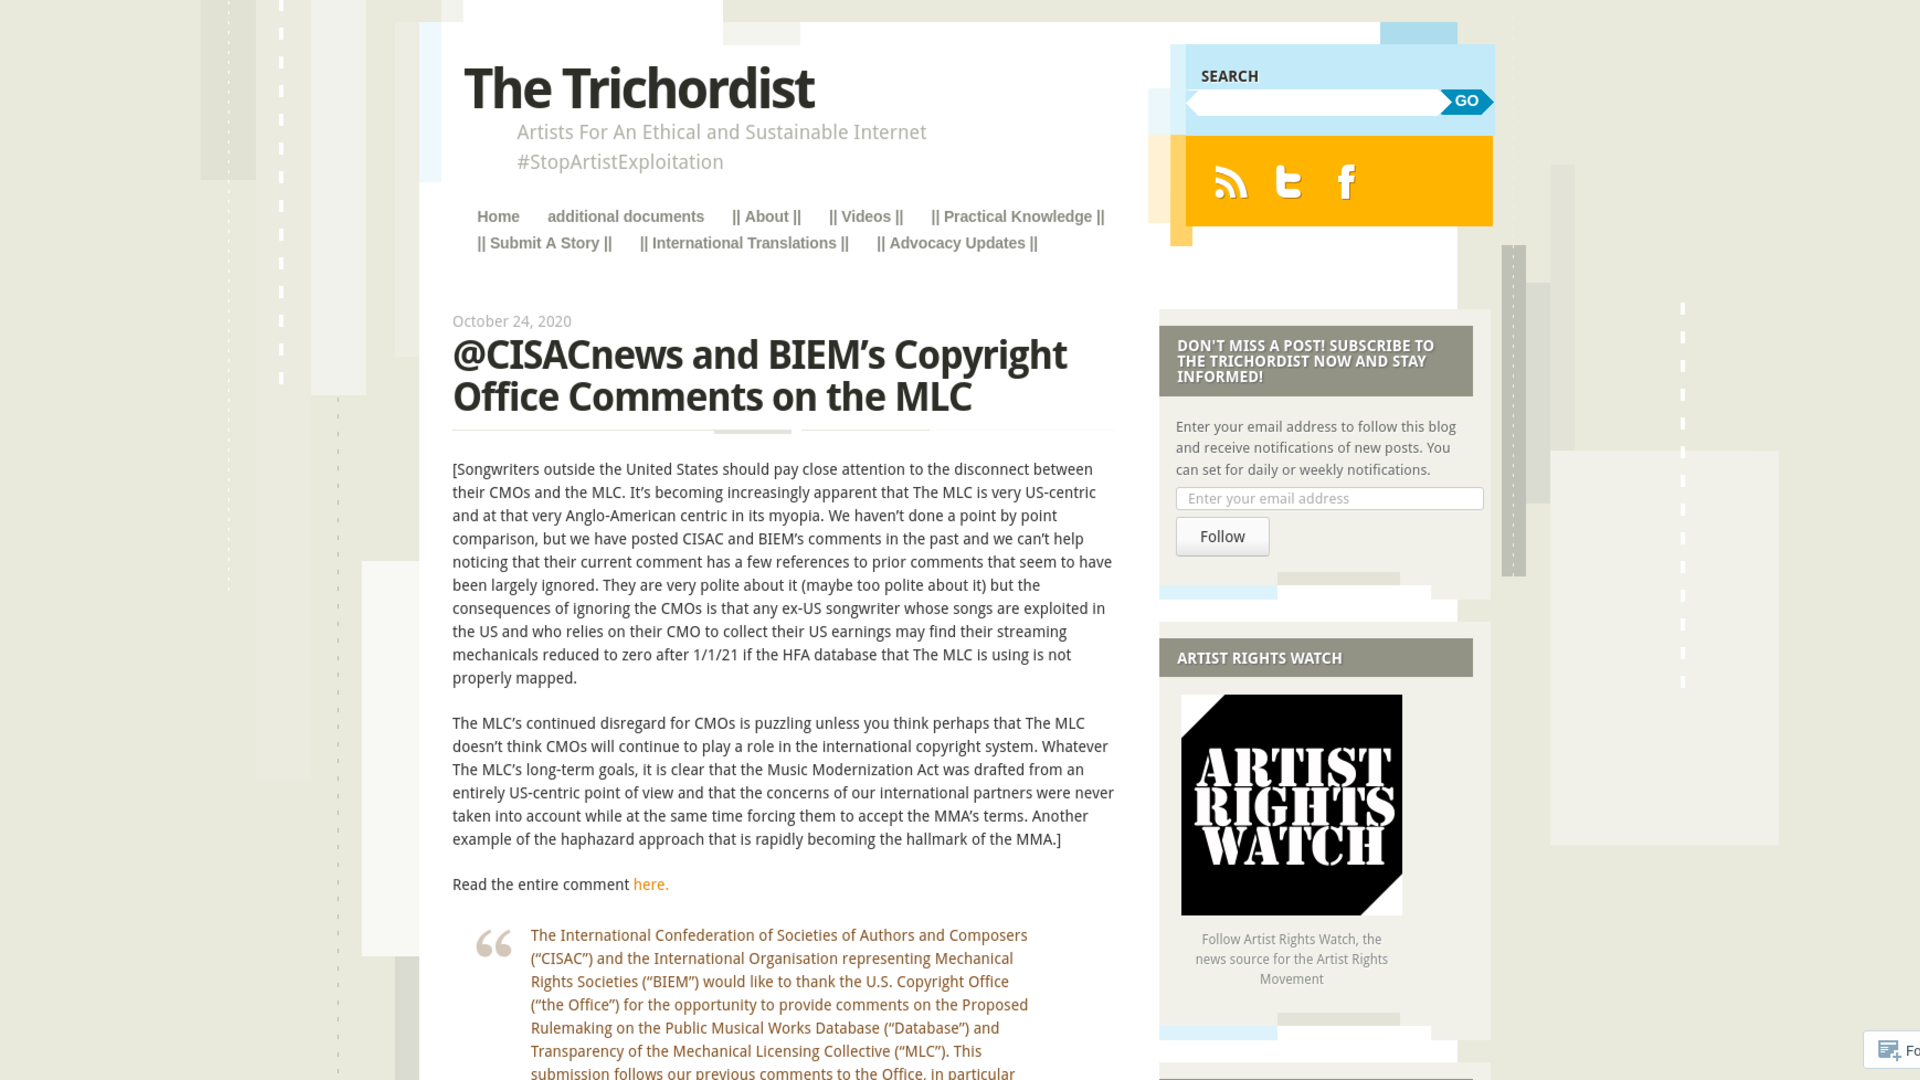 Fairness Rocks News @CISACnews and BIEM's Copyright Office Comments on the MLC